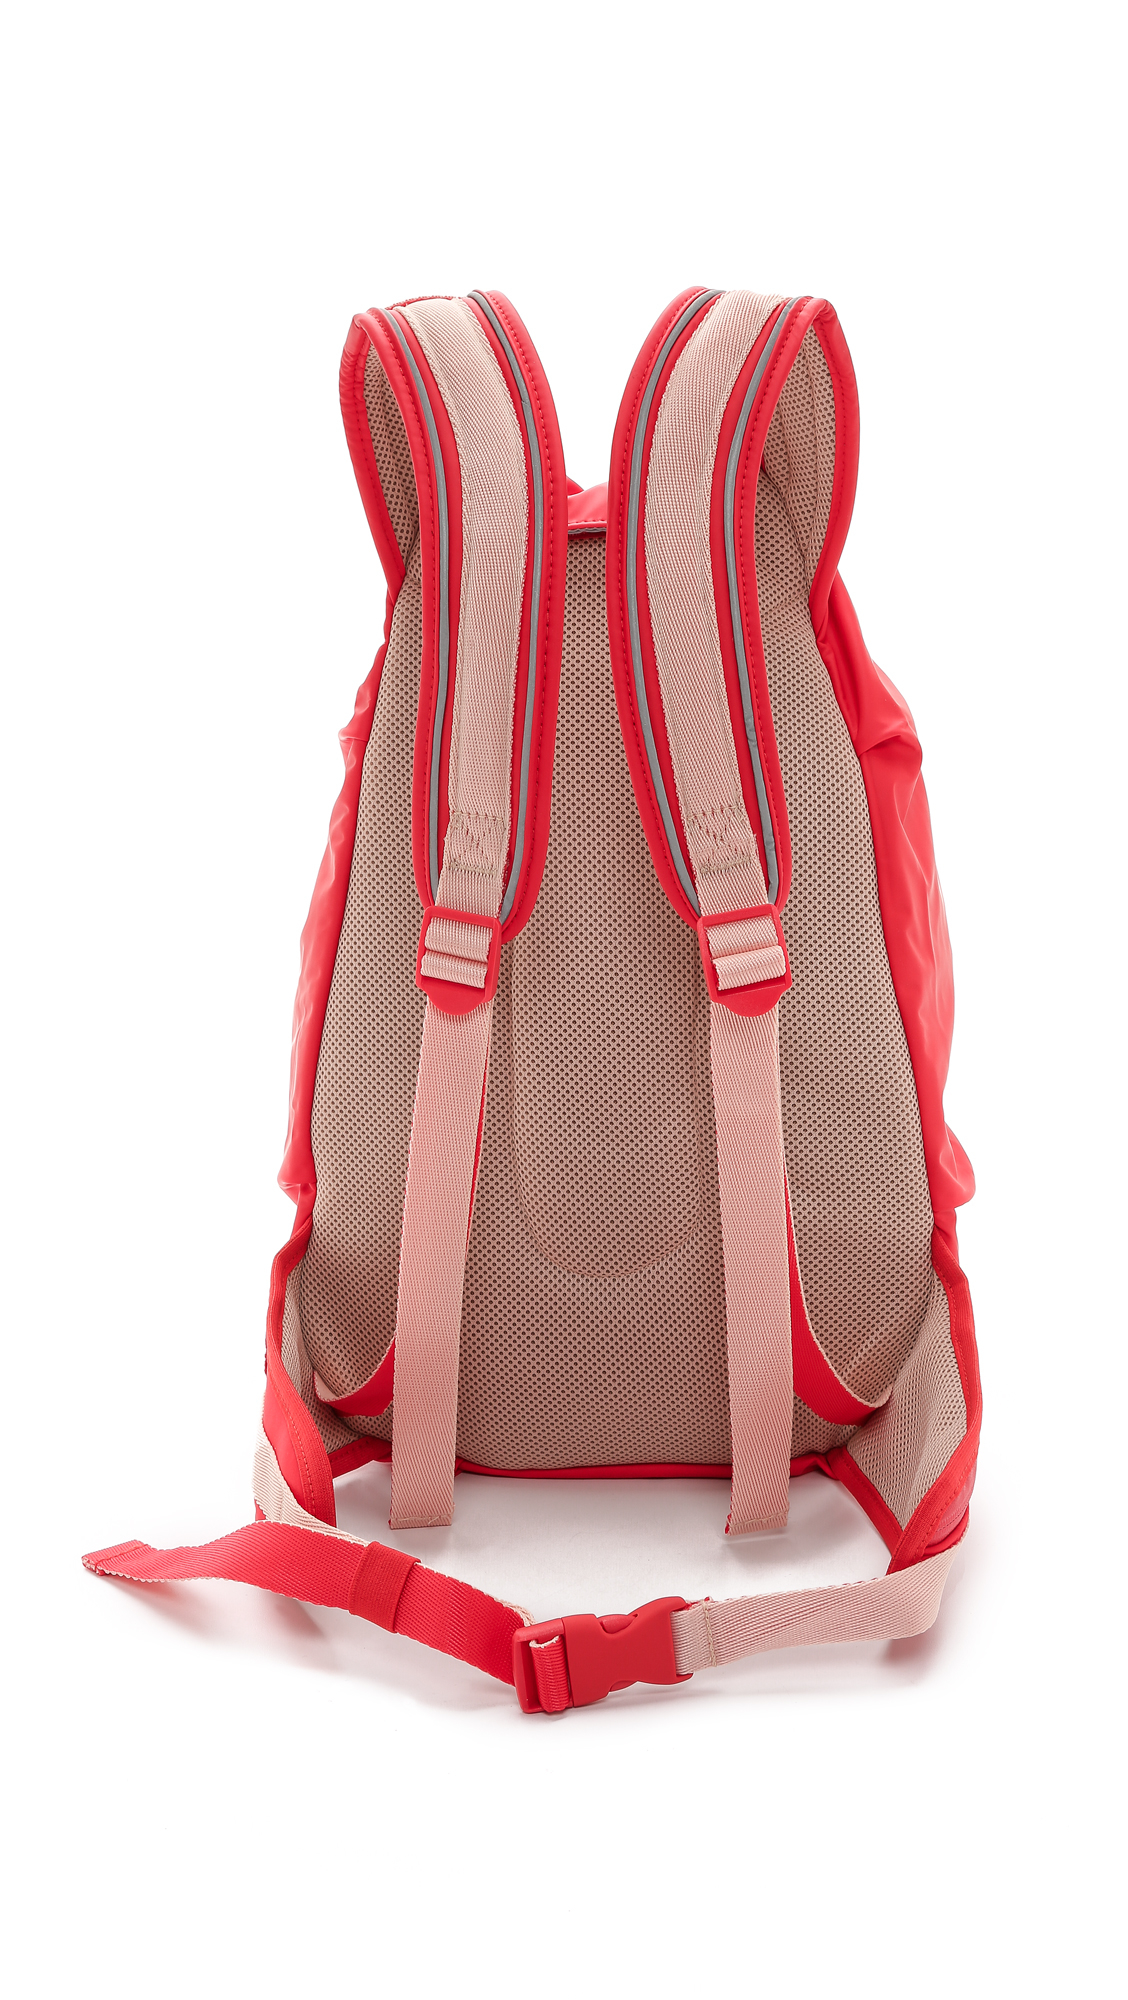 Lyst - adidas By Stella McCartney Running Cycling Backpack - Scarlet ... b66bd6b650